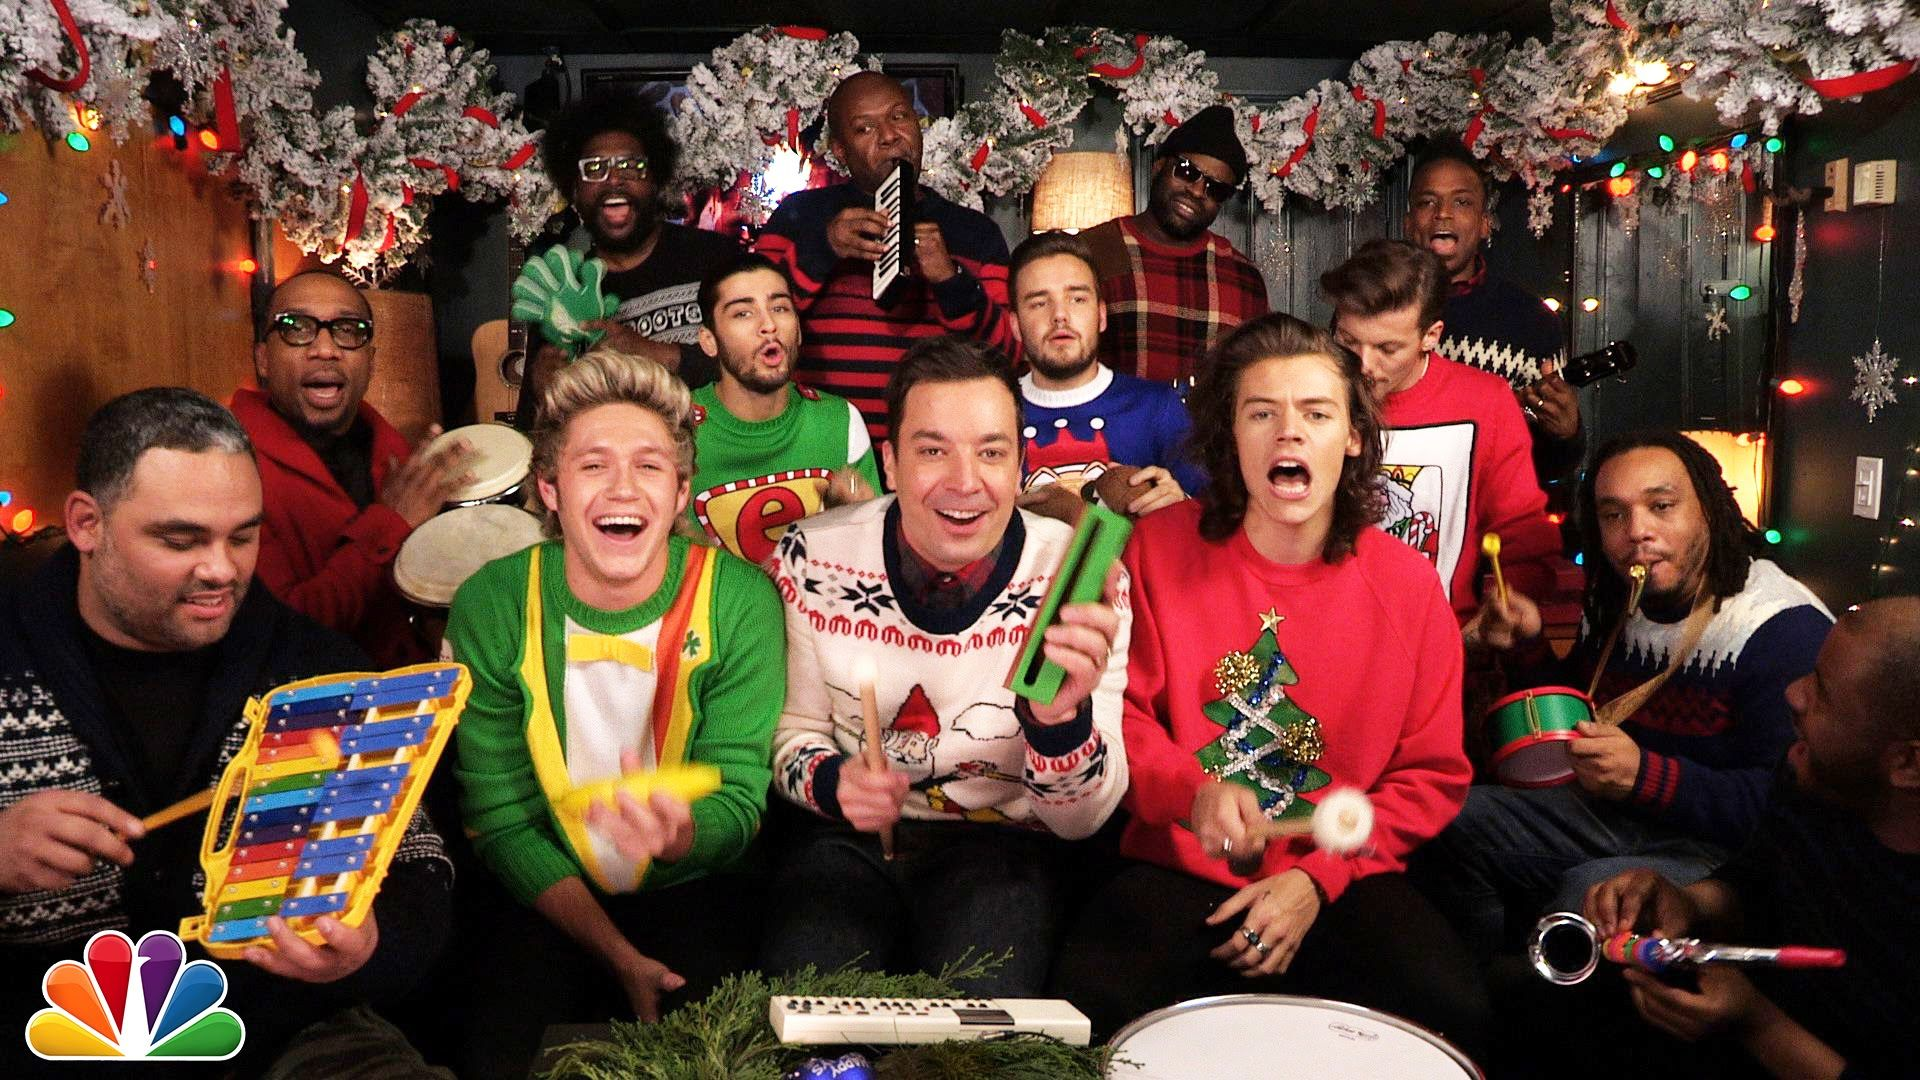 Jimmy Fallon, One Direction & The Roots sing